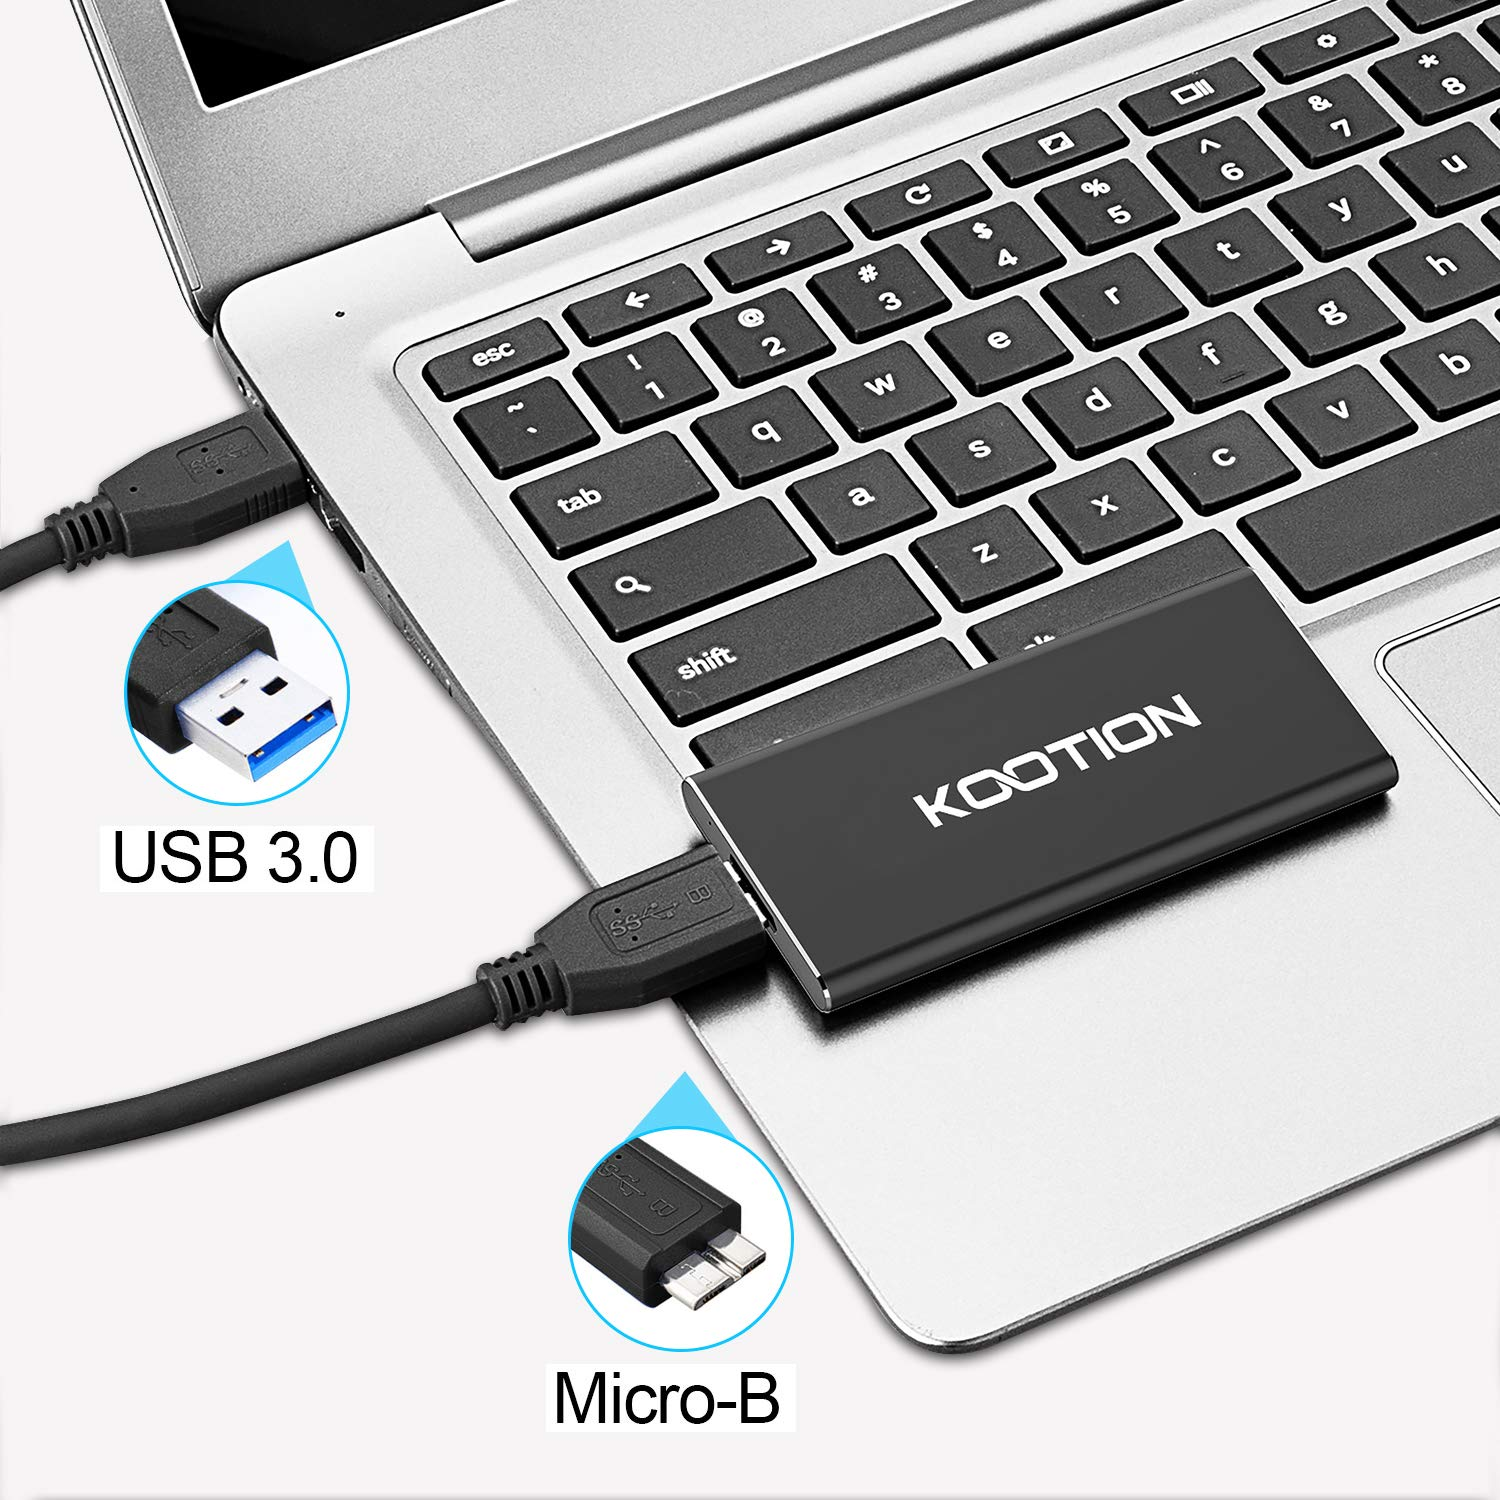 KOOTION 60GB Portable External SSD USB 3.0 High Speed Read & Write up to 400MB/s&300MB/s External Storage Ultra-Slim Solid State Drive for PC, Desktop, Laptop, MacBook by KOOTION (Image #3)